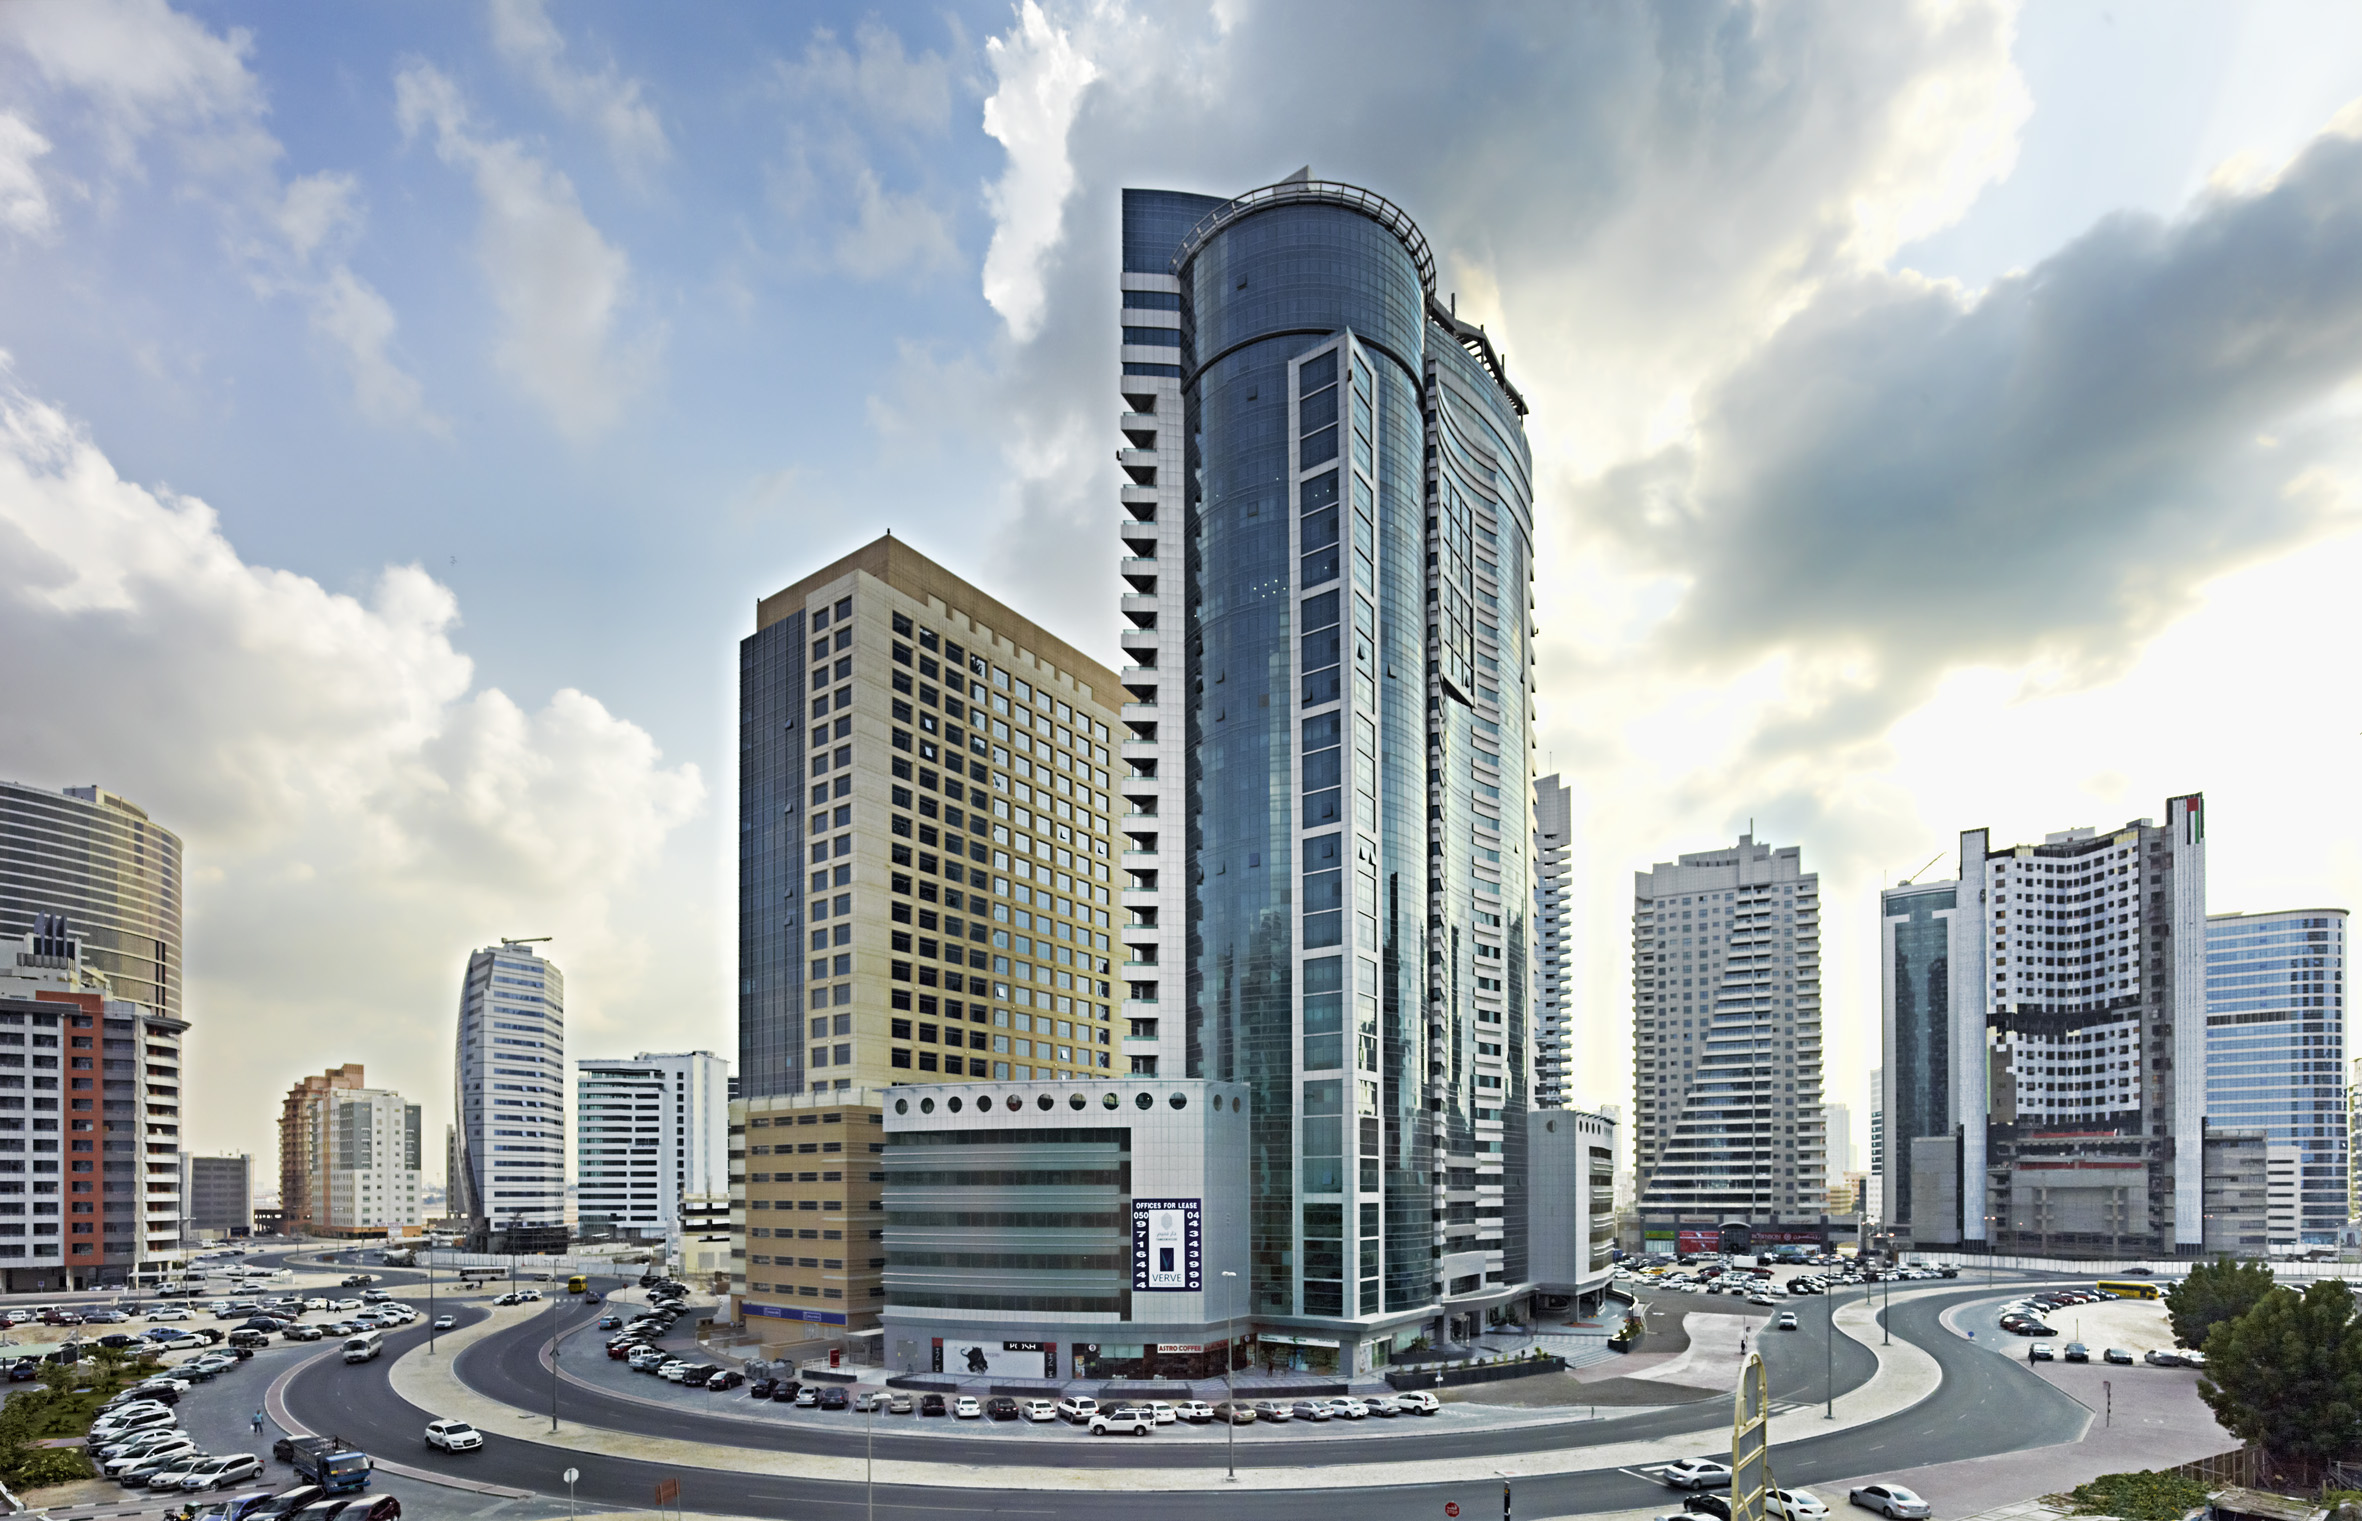 Dubai will soon get a new rental law which will bring more transparency in the real estate sector.